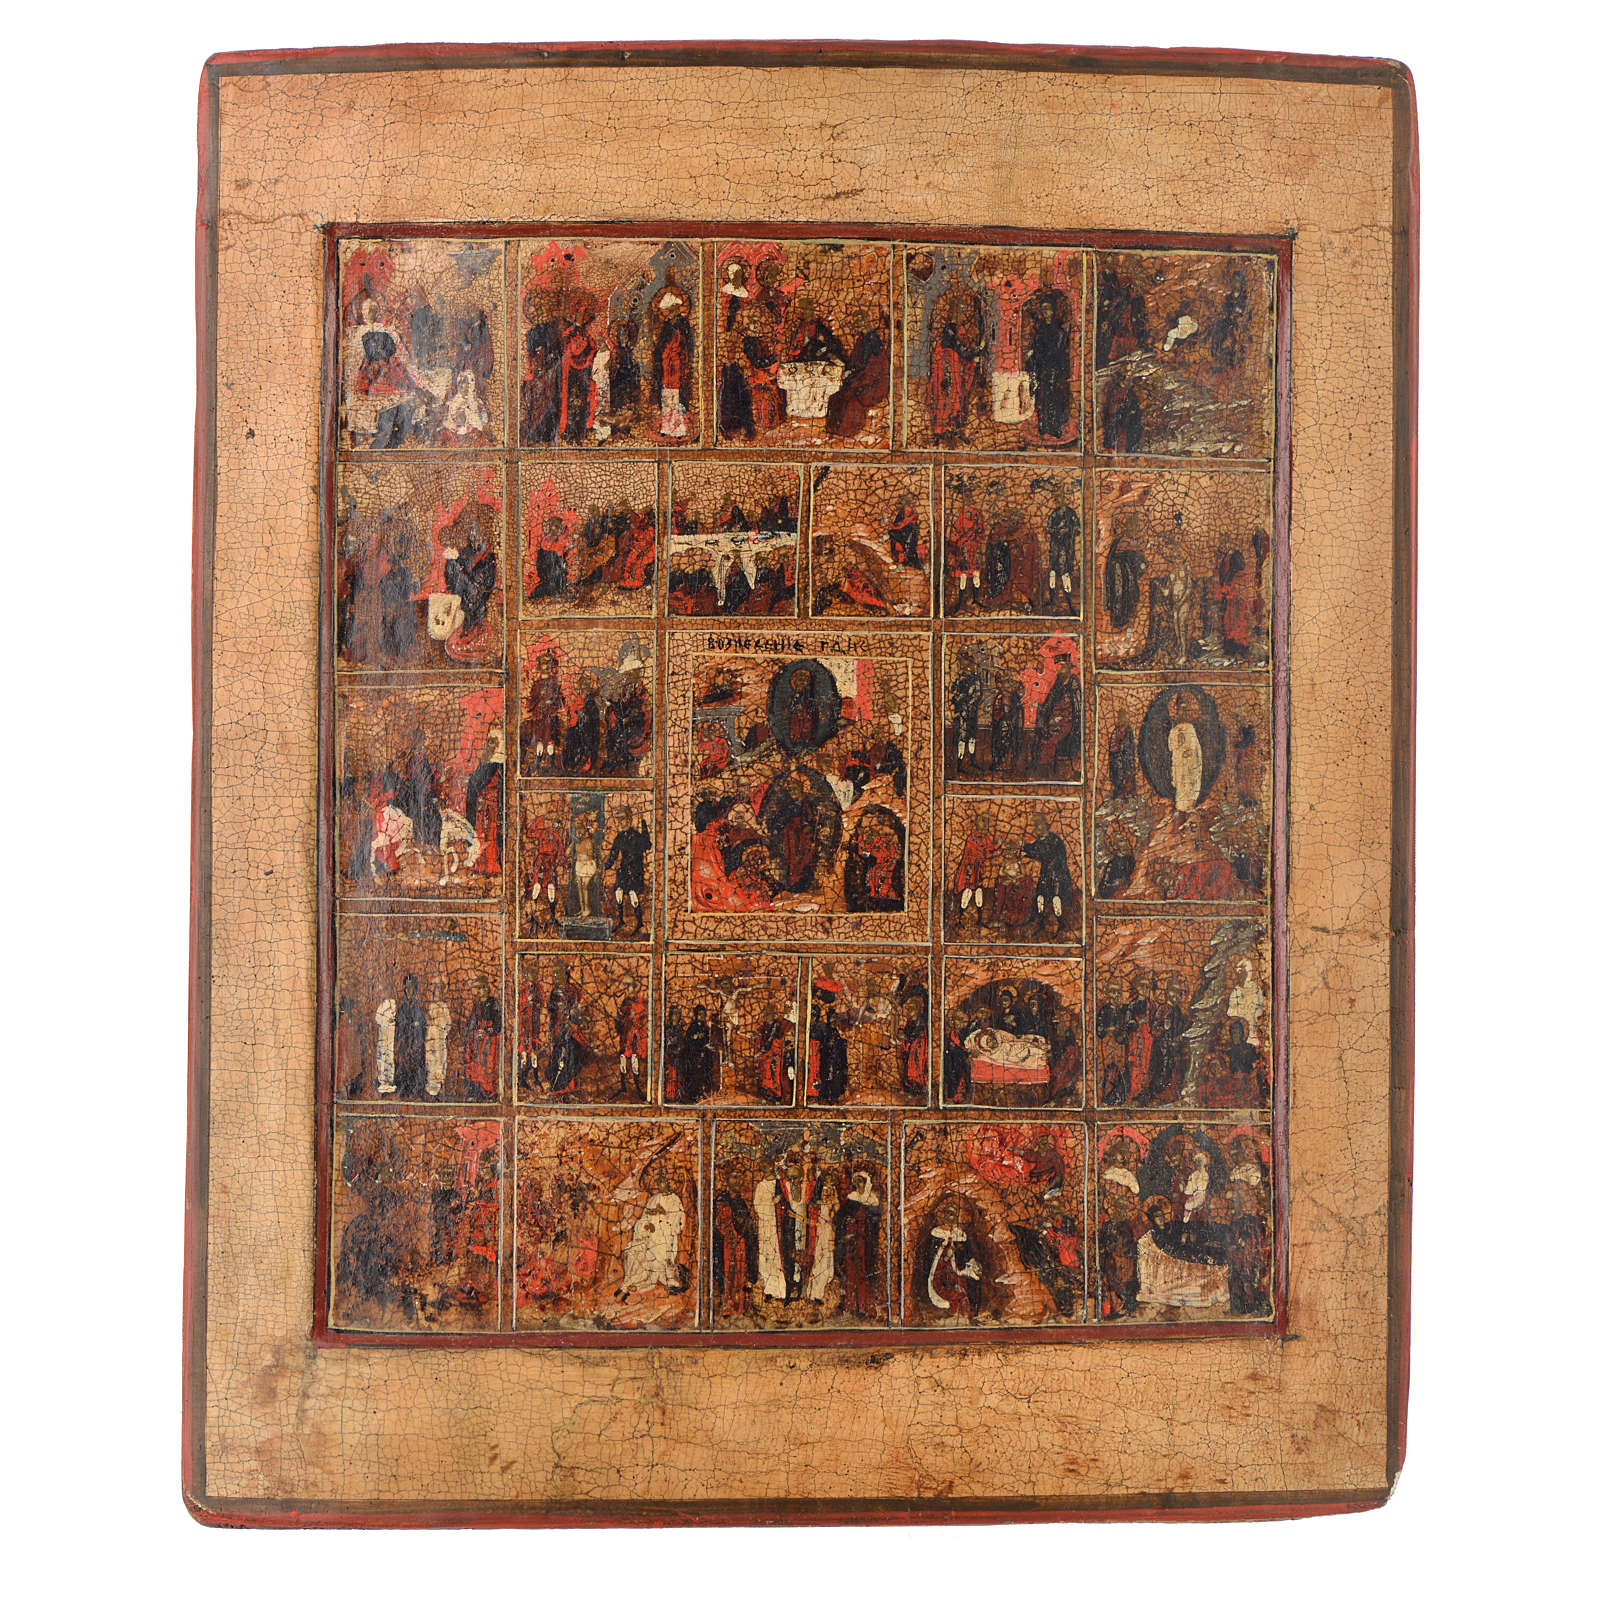 Russian icon 16 Festivities and Passion Narratives XVIII century 4